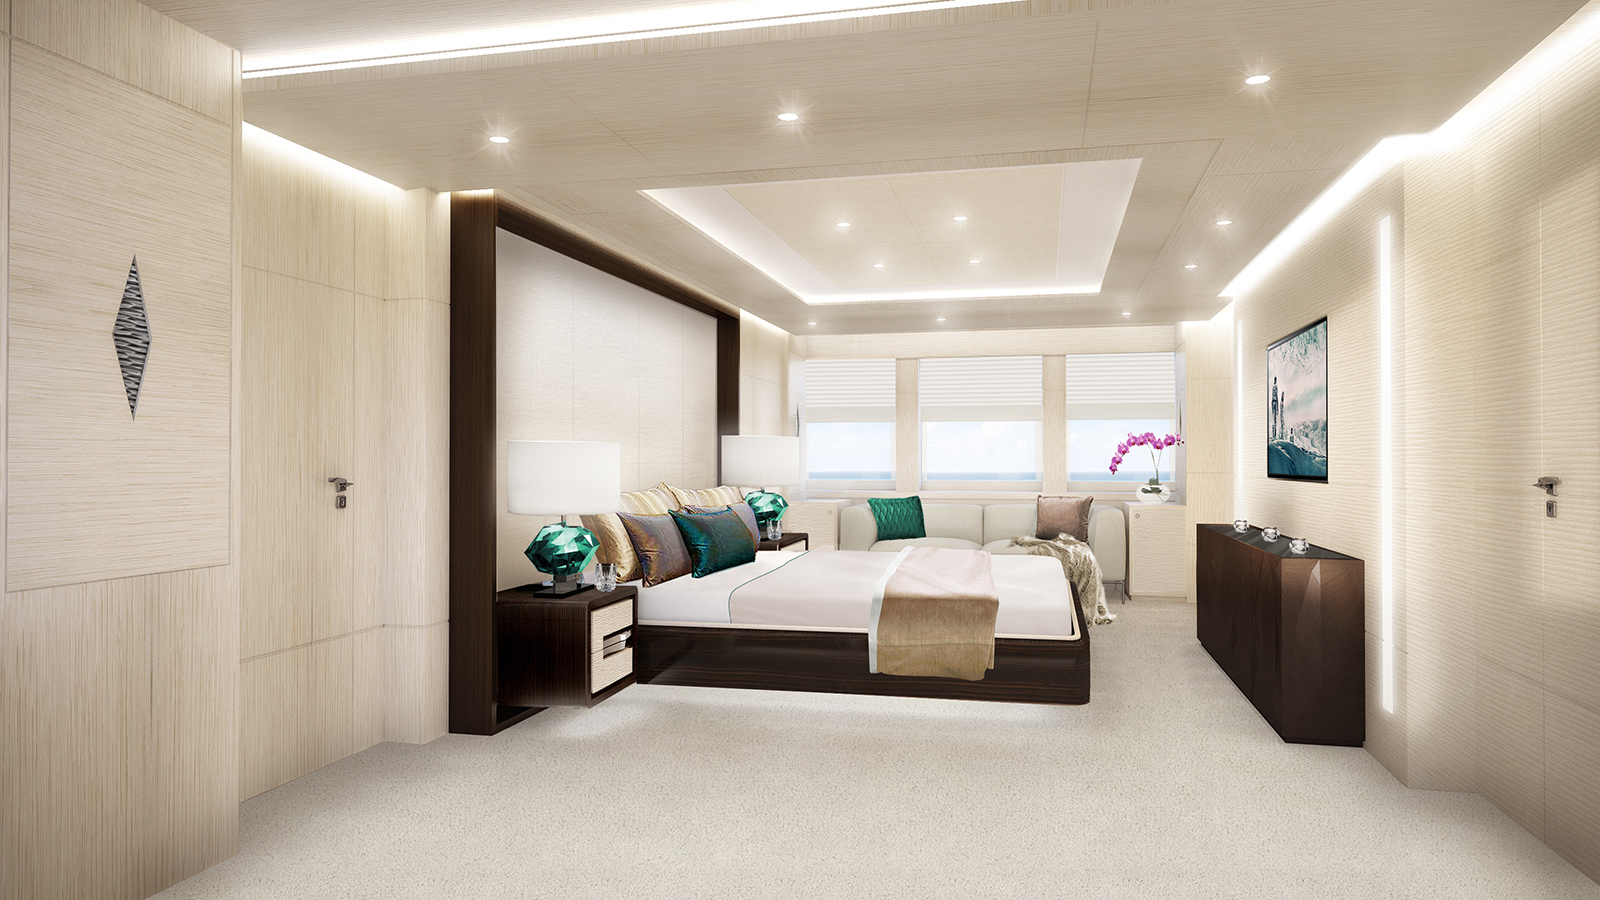 the-owners-cabin-of-Omaha-by-heesen-yachts